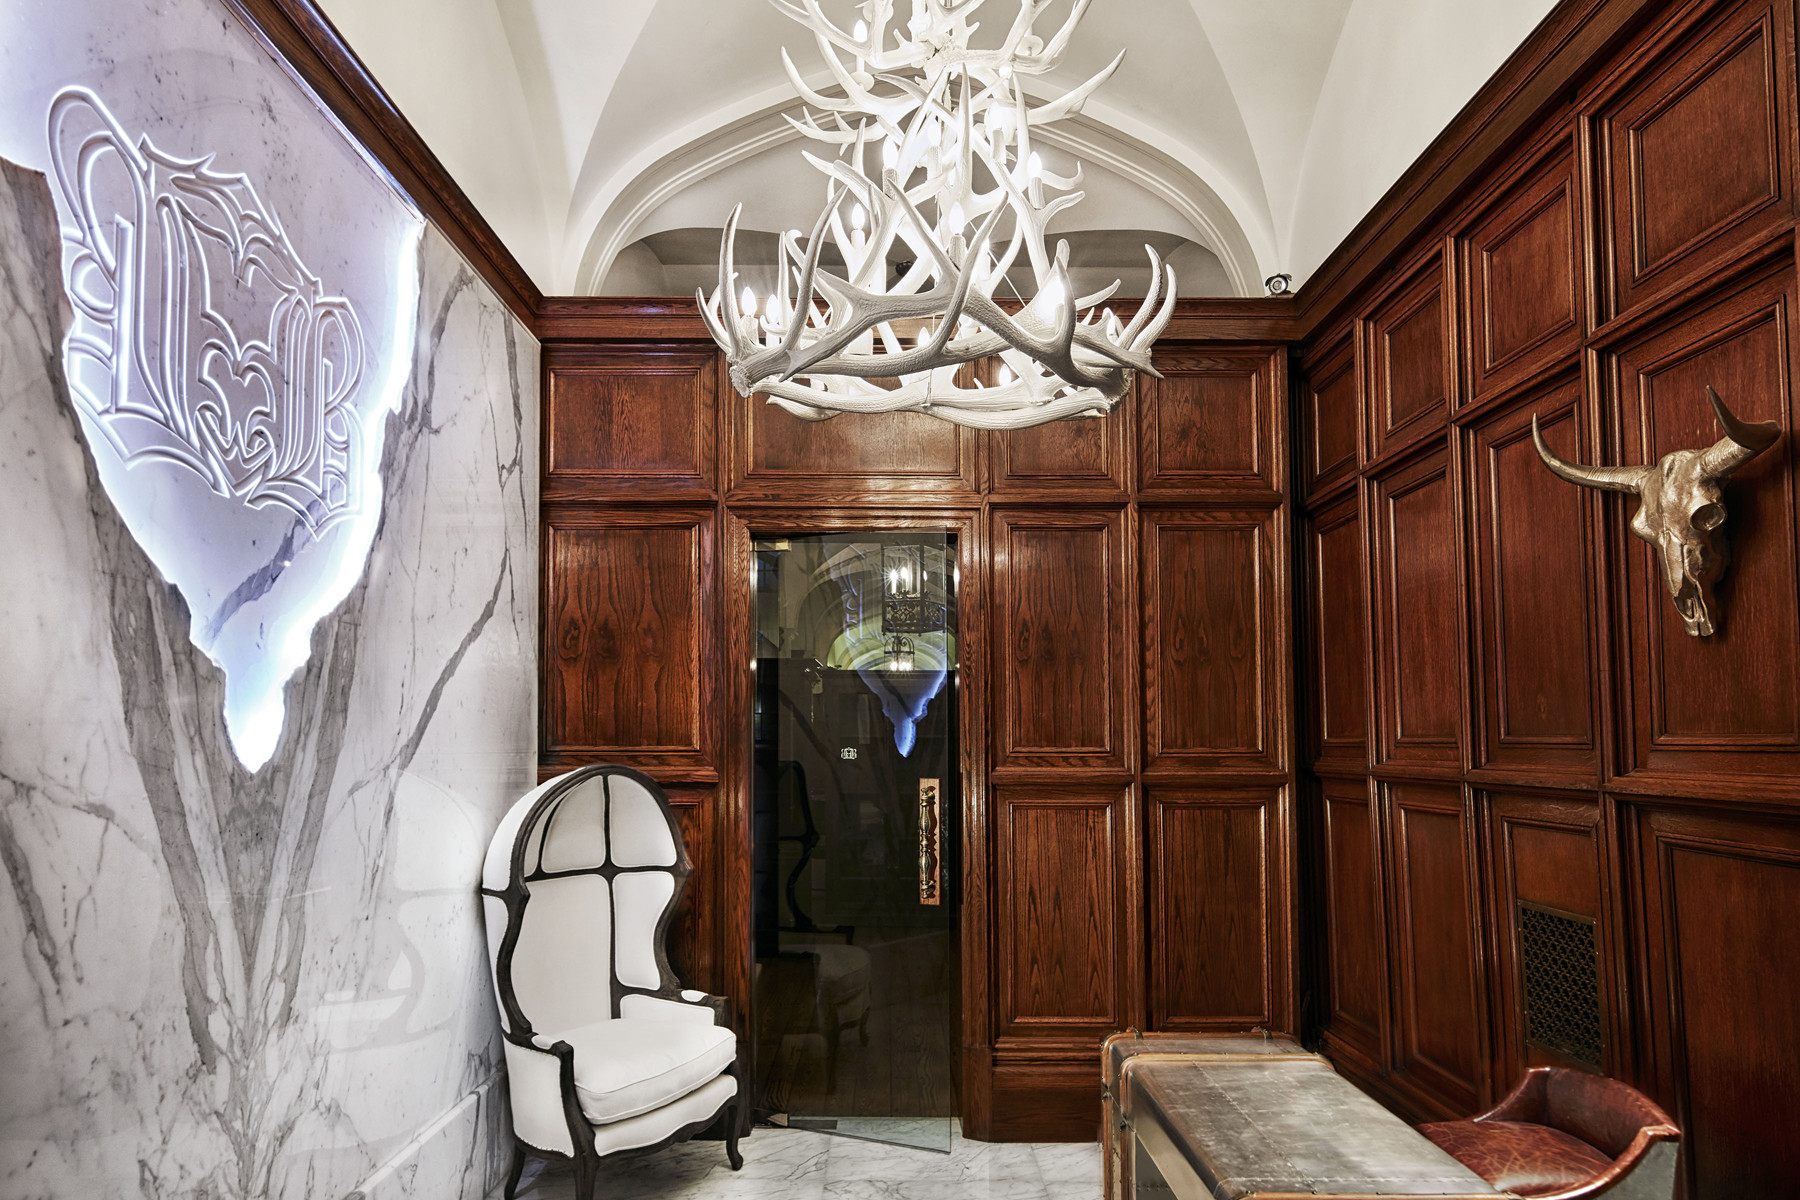 Corridor entrance with white antler chandelier, wood paneled walls with glass door and marble floors and feature wall with back lit logo